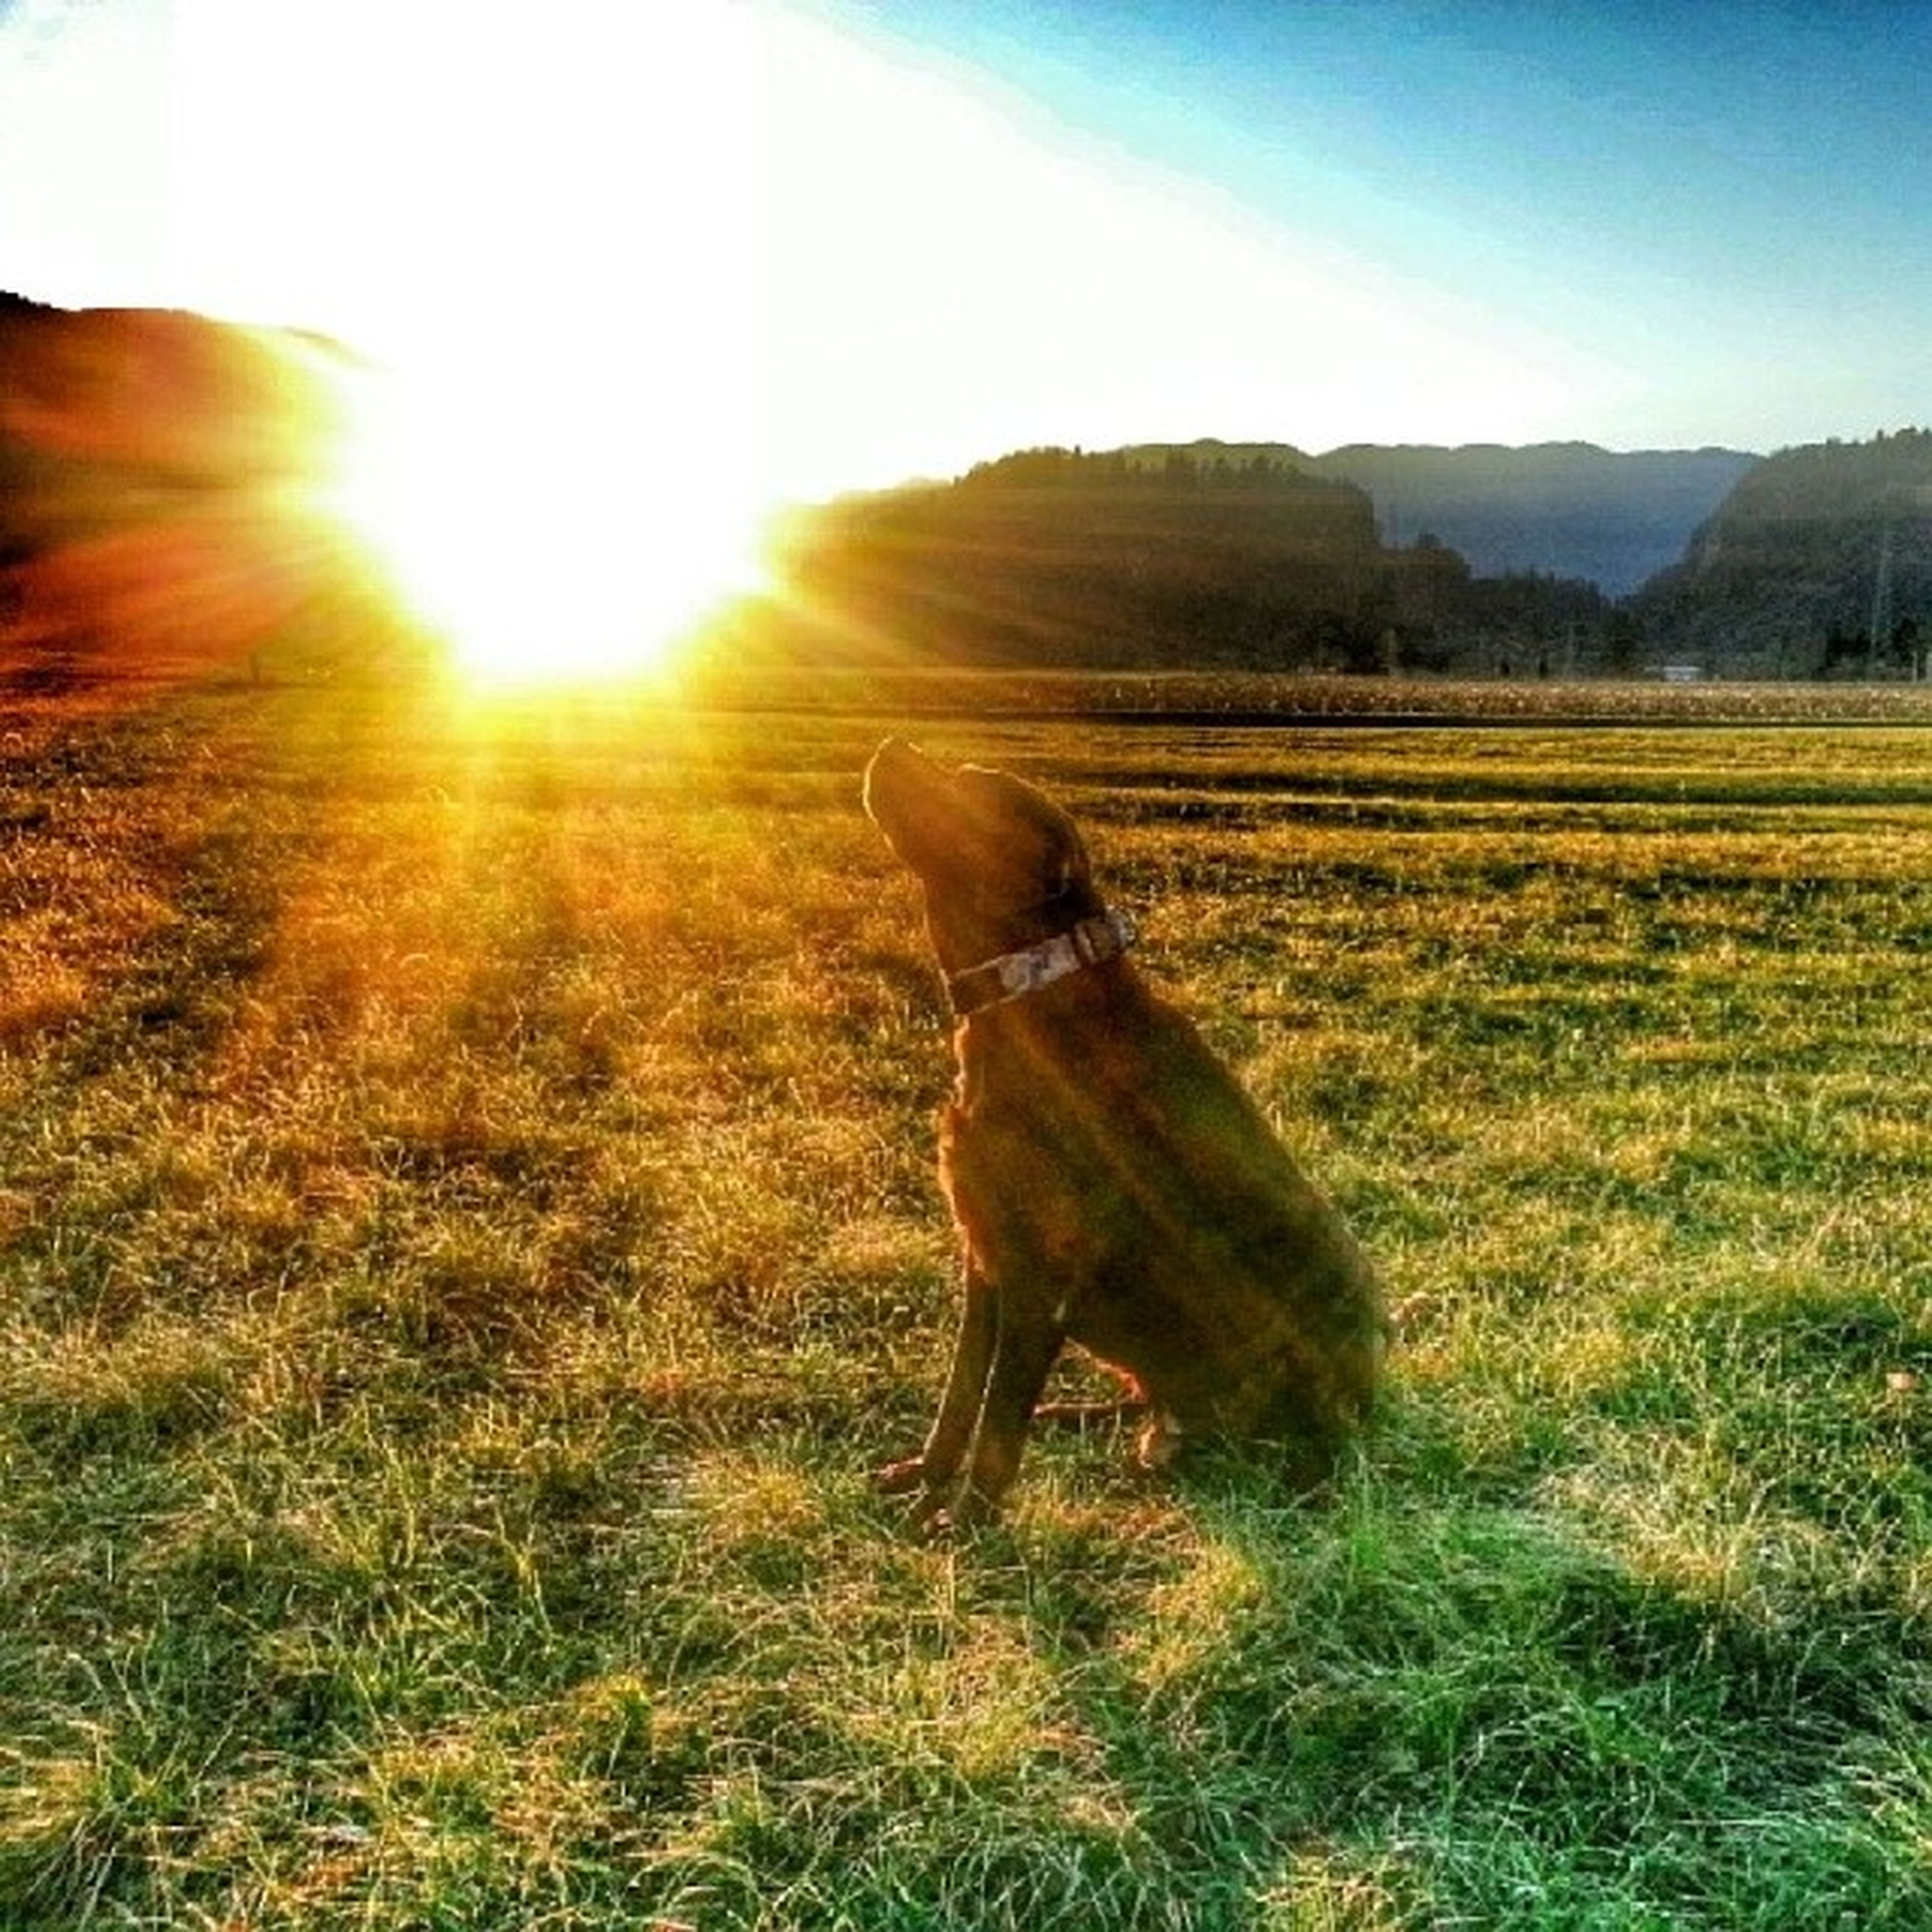 sun, grass, field, domestic animals, sunbeam, one animal, sunlight, lens flare, mammal, animal themes, landscape, grassy, full length, dog, standing, pets, one person, sky, nature, tranquility